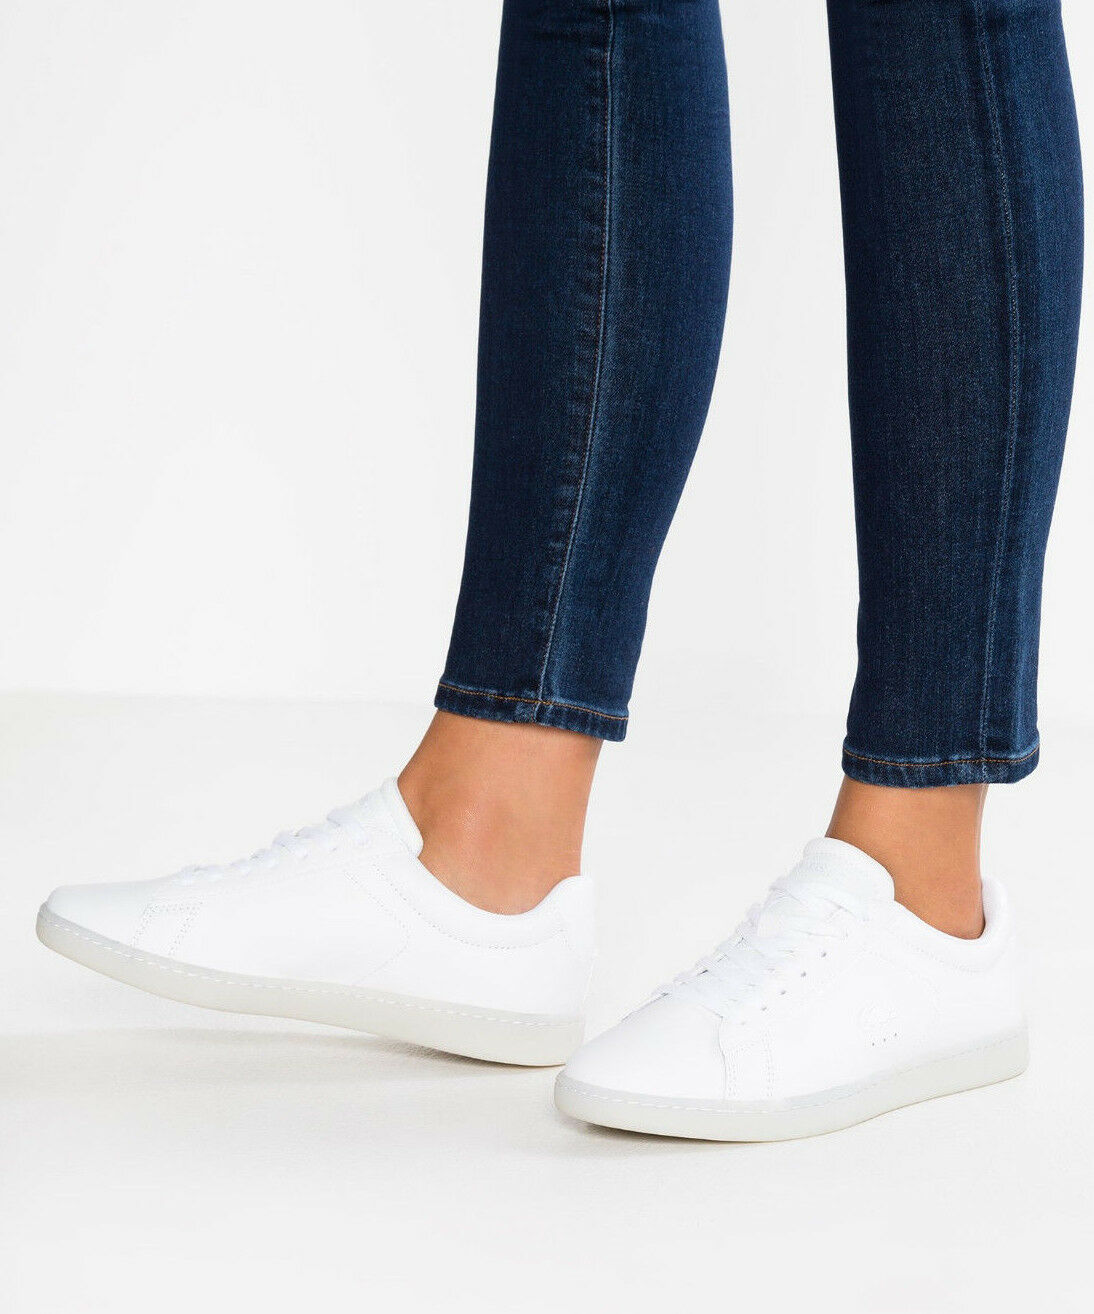 Womens Lacoste shoes Carnaby EVO 118 3 SPW White 735SPW0010 21G Sneakers NEW